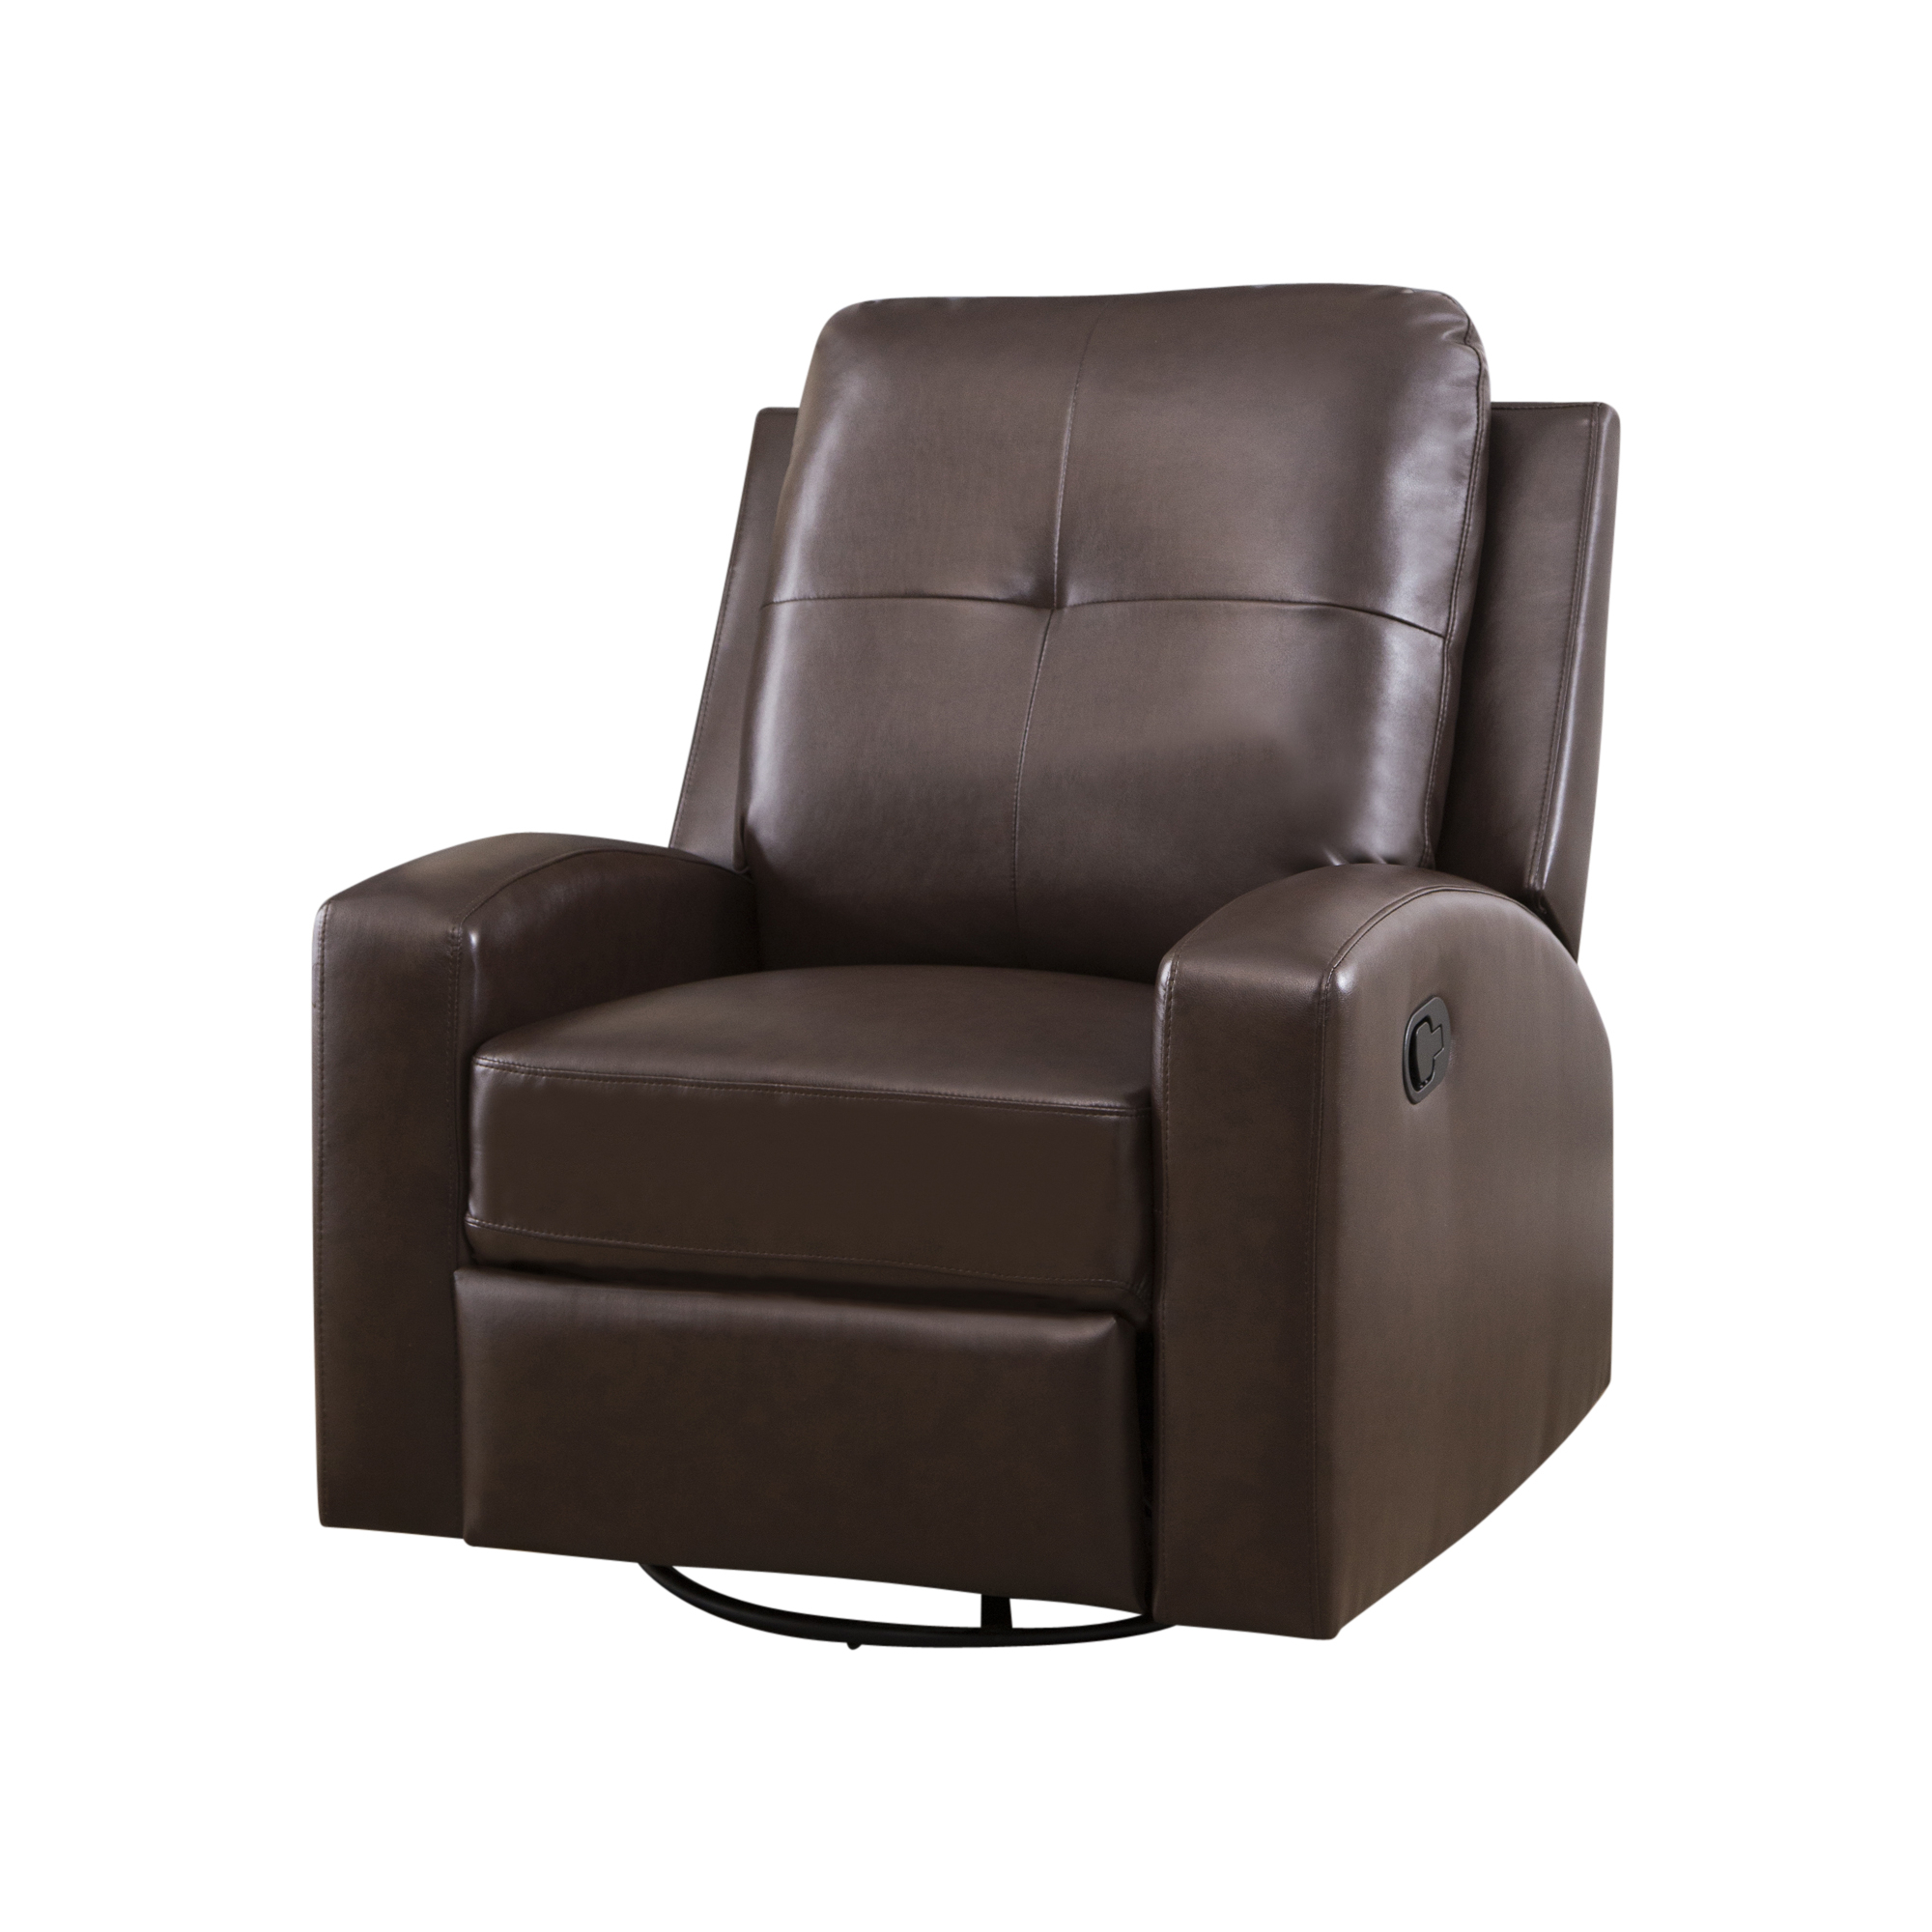 Katrina Beige Swivel Glider Chairs In Most Current Katrina Swivel Glider Recliner, Dark Brown – Walmart (View 11 of 20)